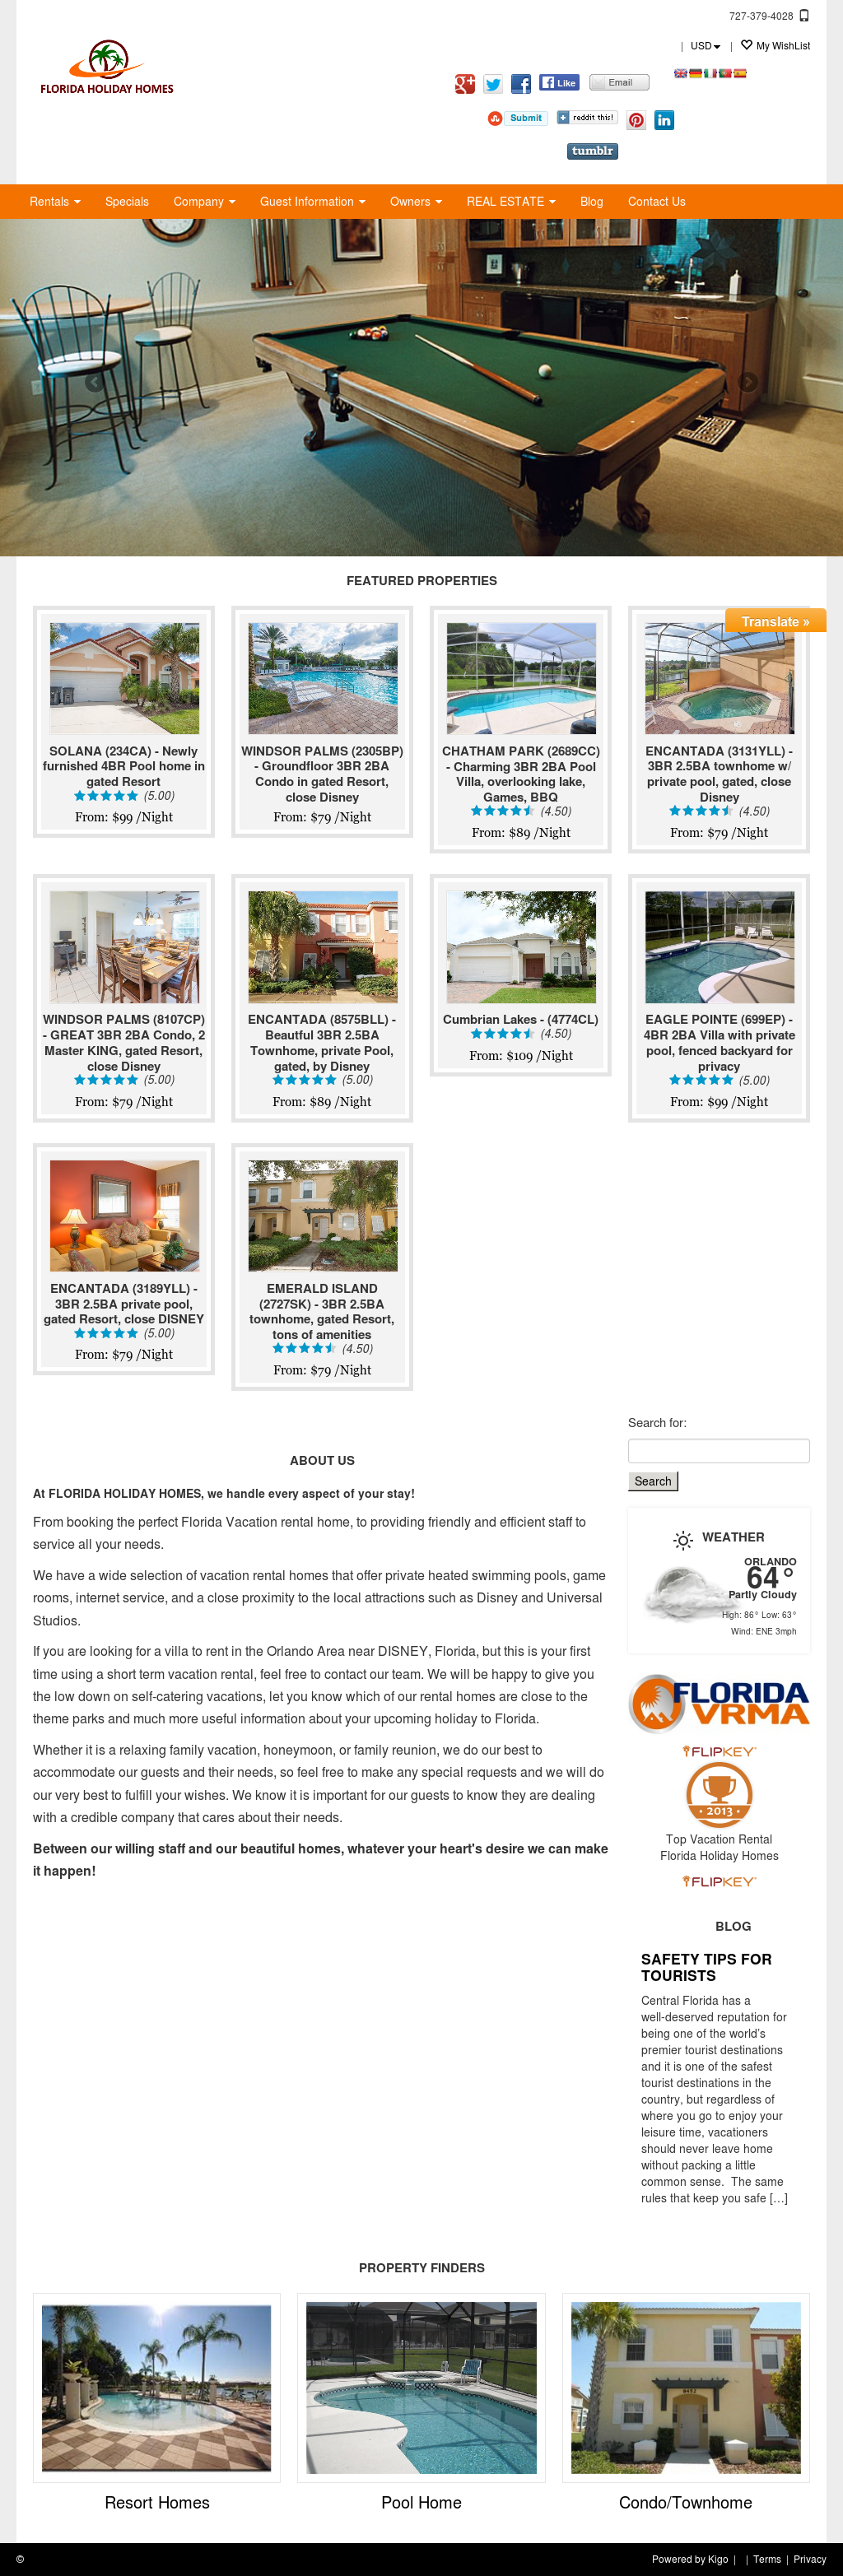 Florida Holiday Homes Competitors, Revenue and Employees - Owler